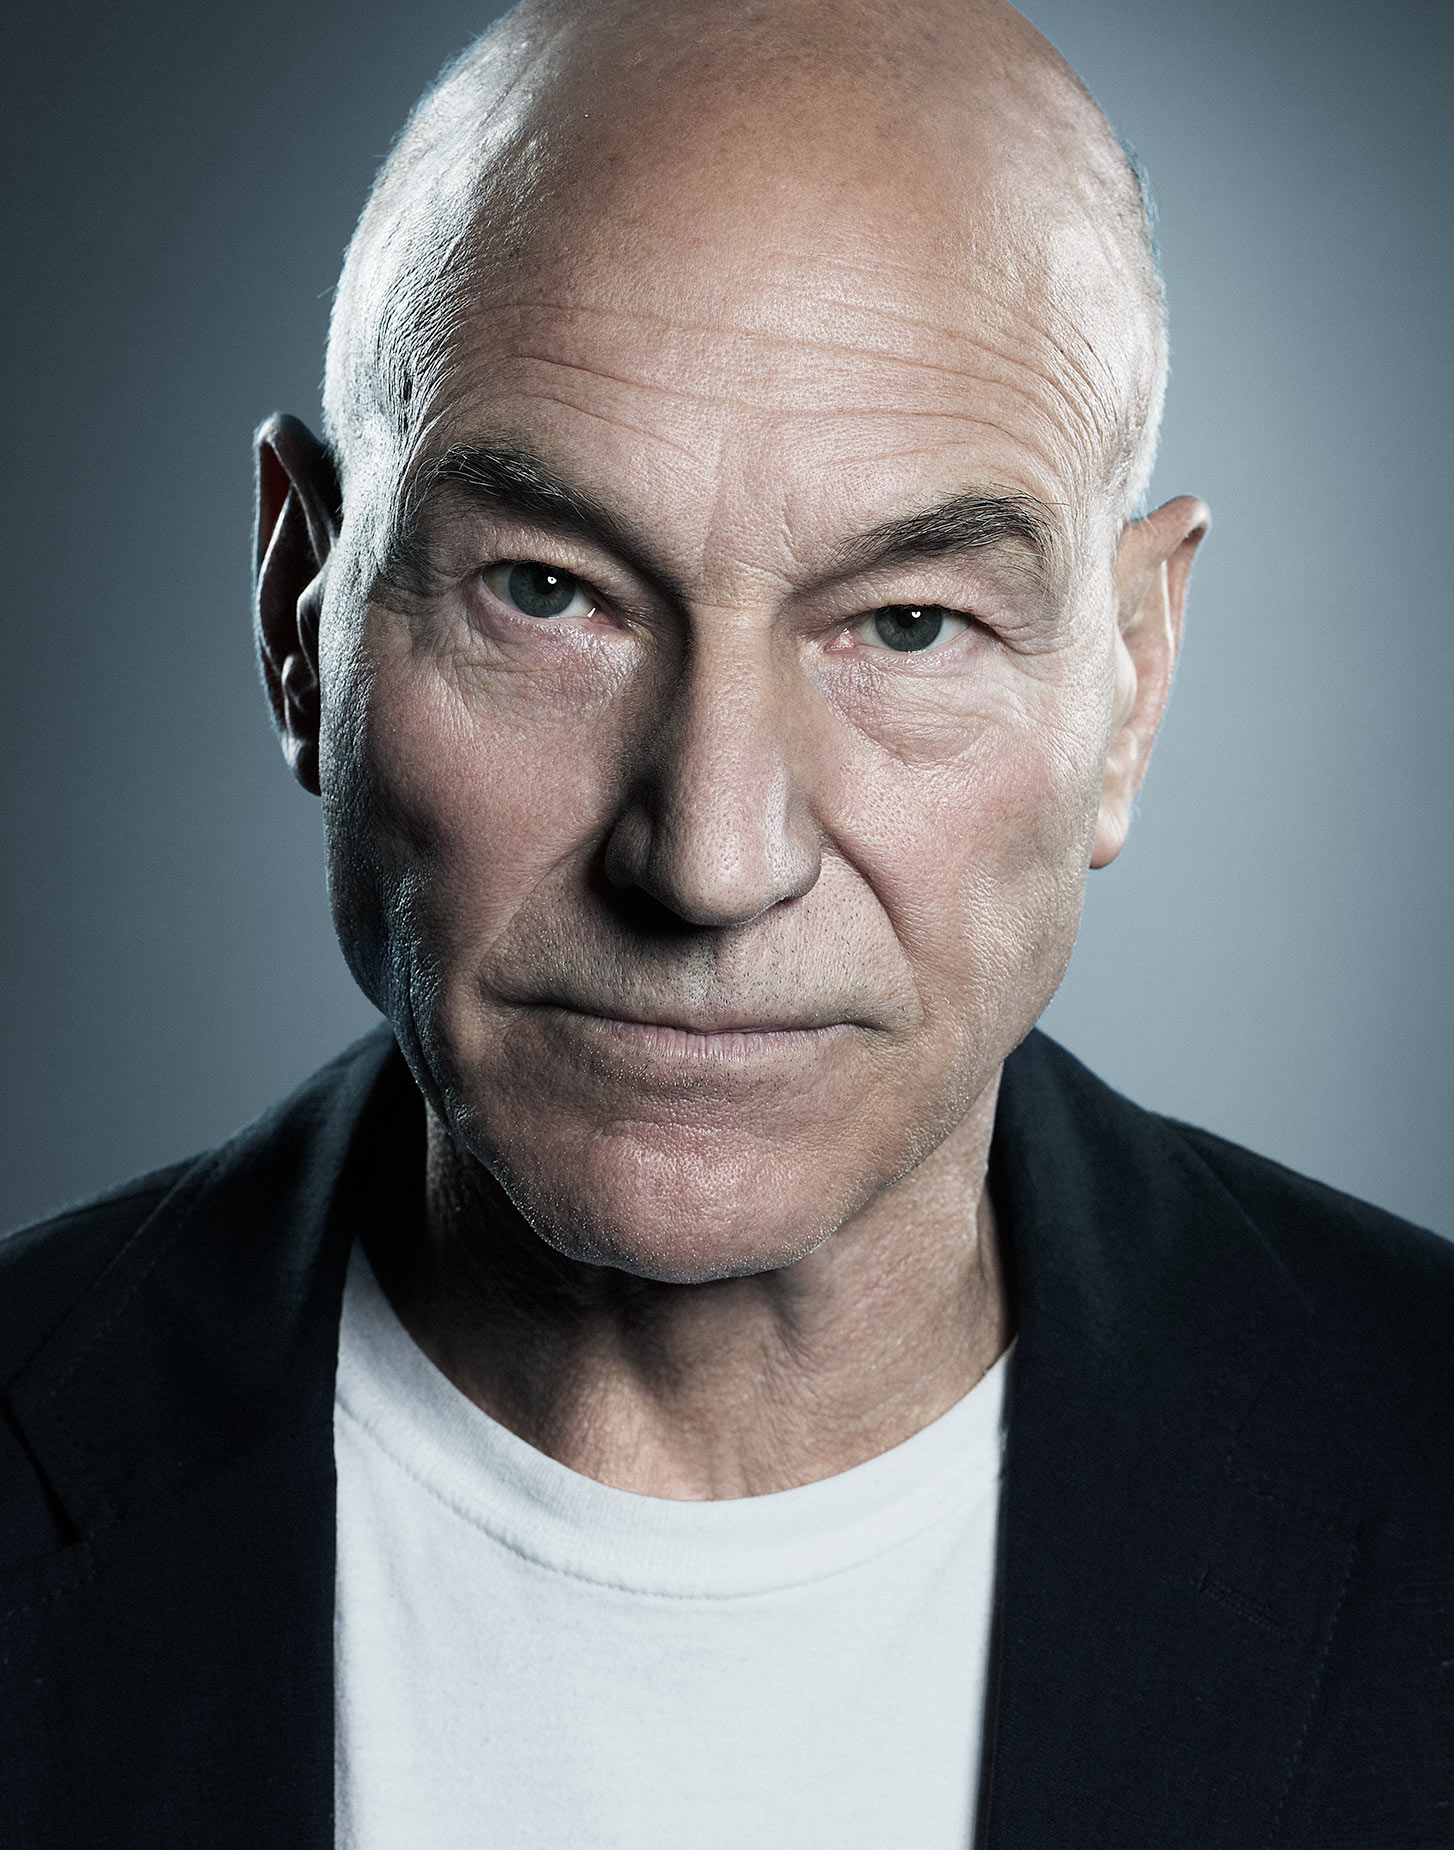 Patrick-Stewart-by-Robert-Ascroft.jpg